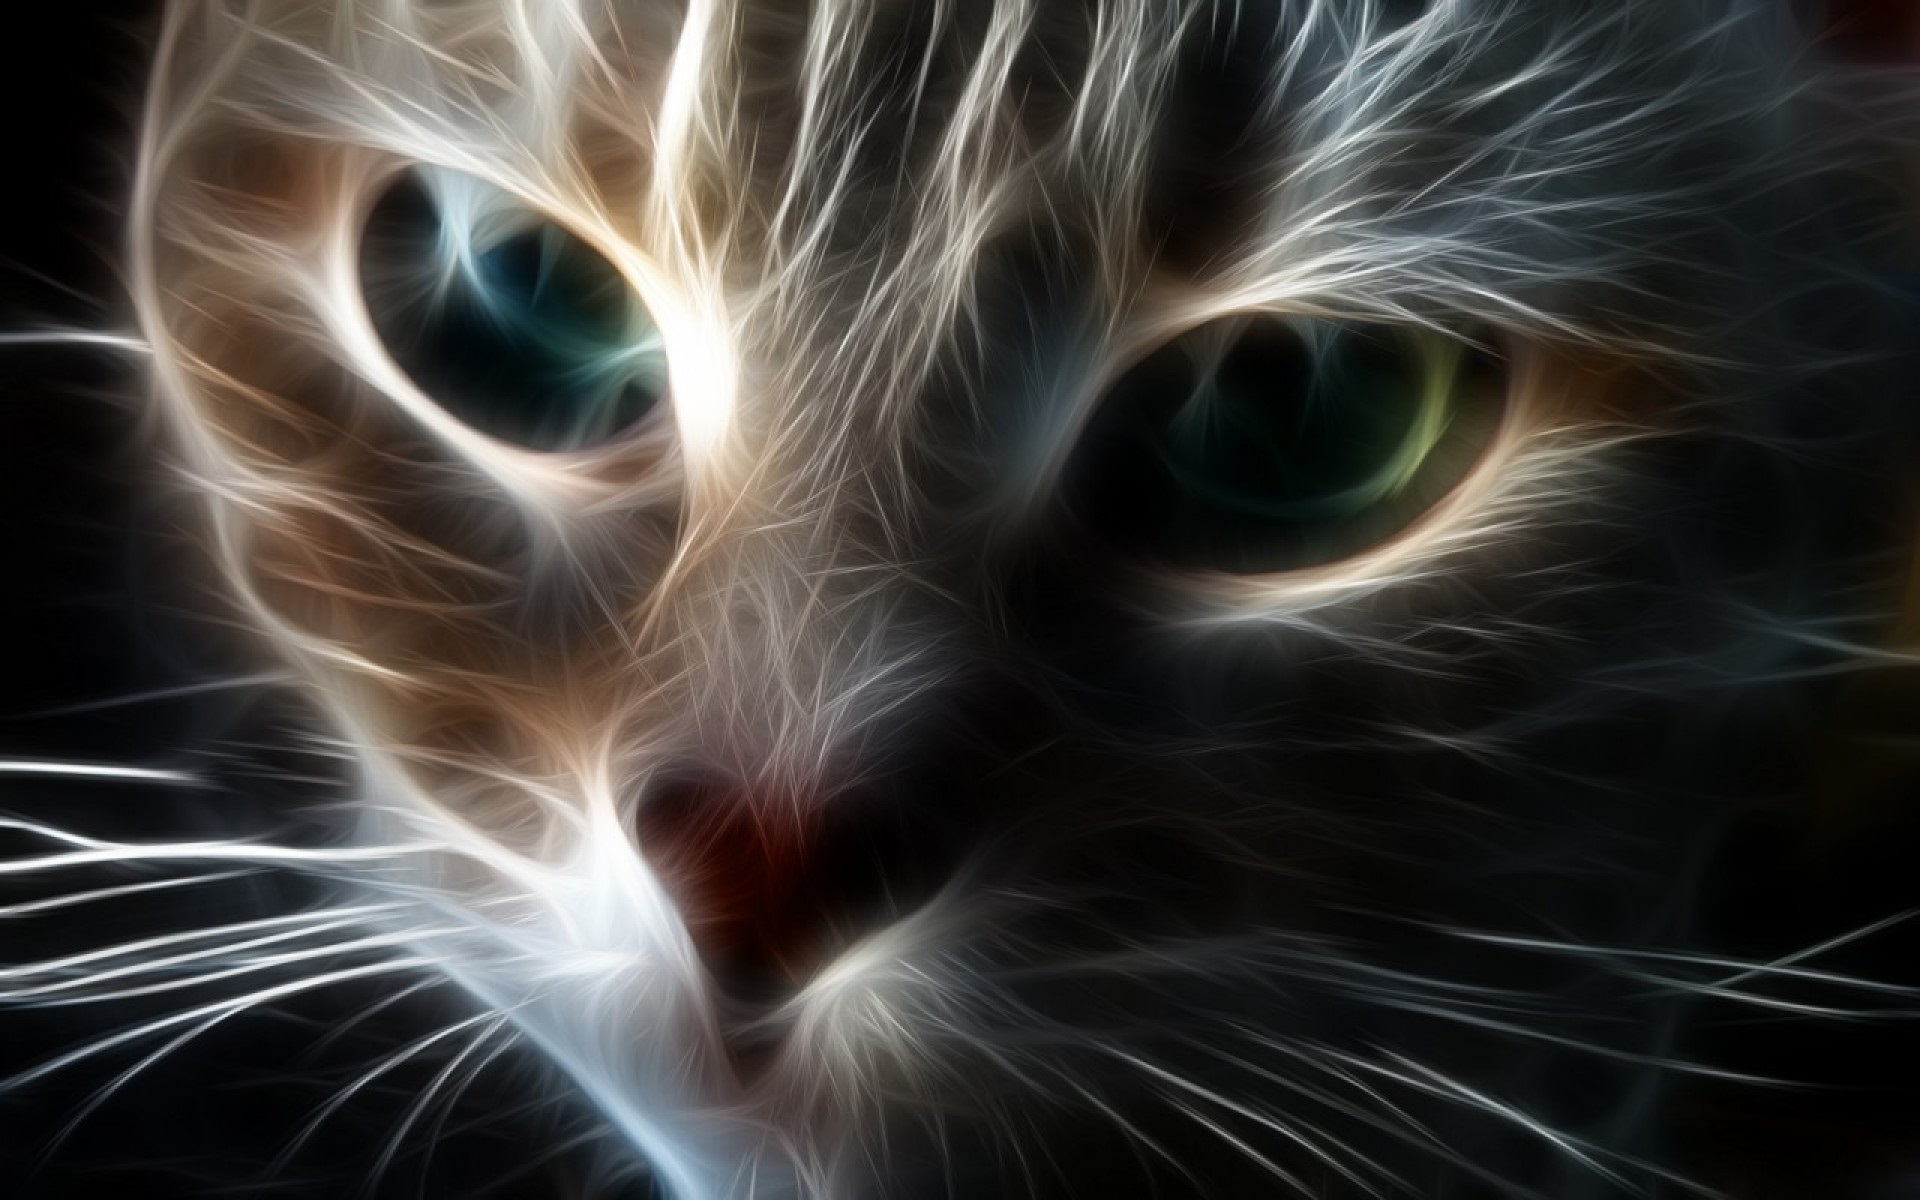 Free Download Abstract Cat Hd Cool Wallpaper 1920x1200 For Your Desktop Mobile Tablet Explore 72 Cool Cat Backgrounds Cool Desktop Wallpapers Kitten Wallpapers Free Download Xxlrg Wallpaper Cats With Quotes